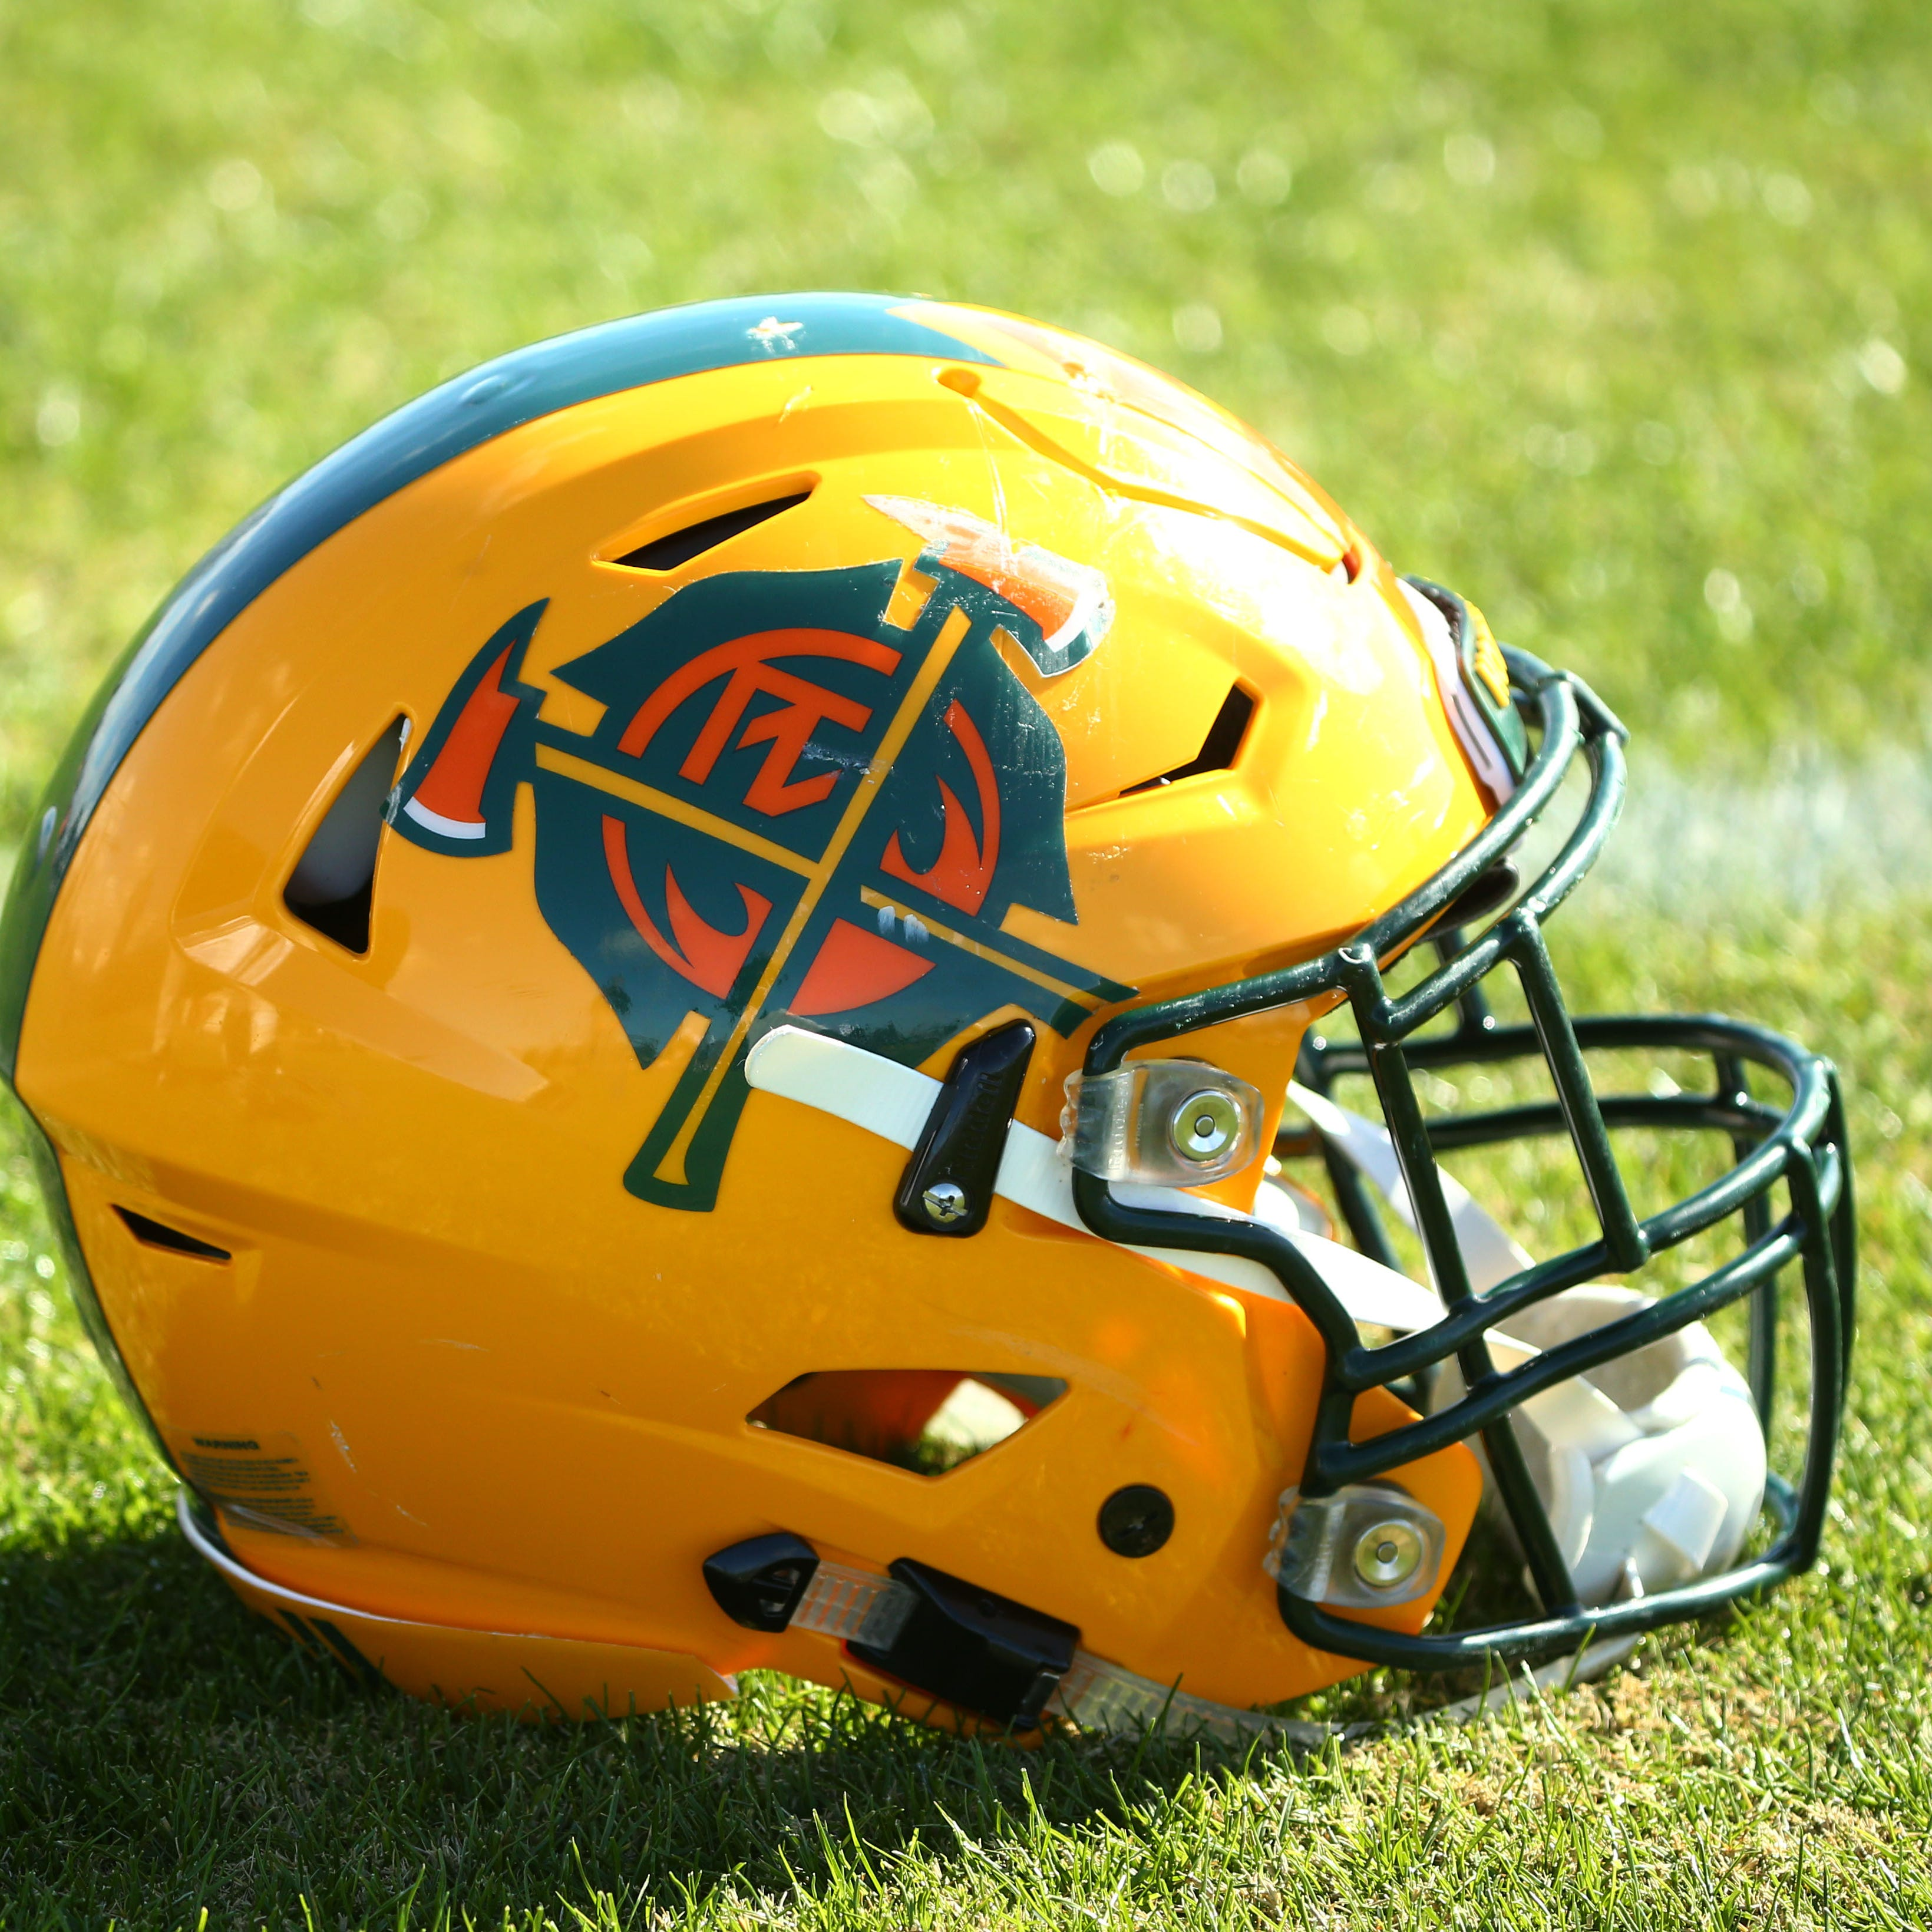 AAF bankruptcy: Defunct league owes ASU $1.2 million, report says